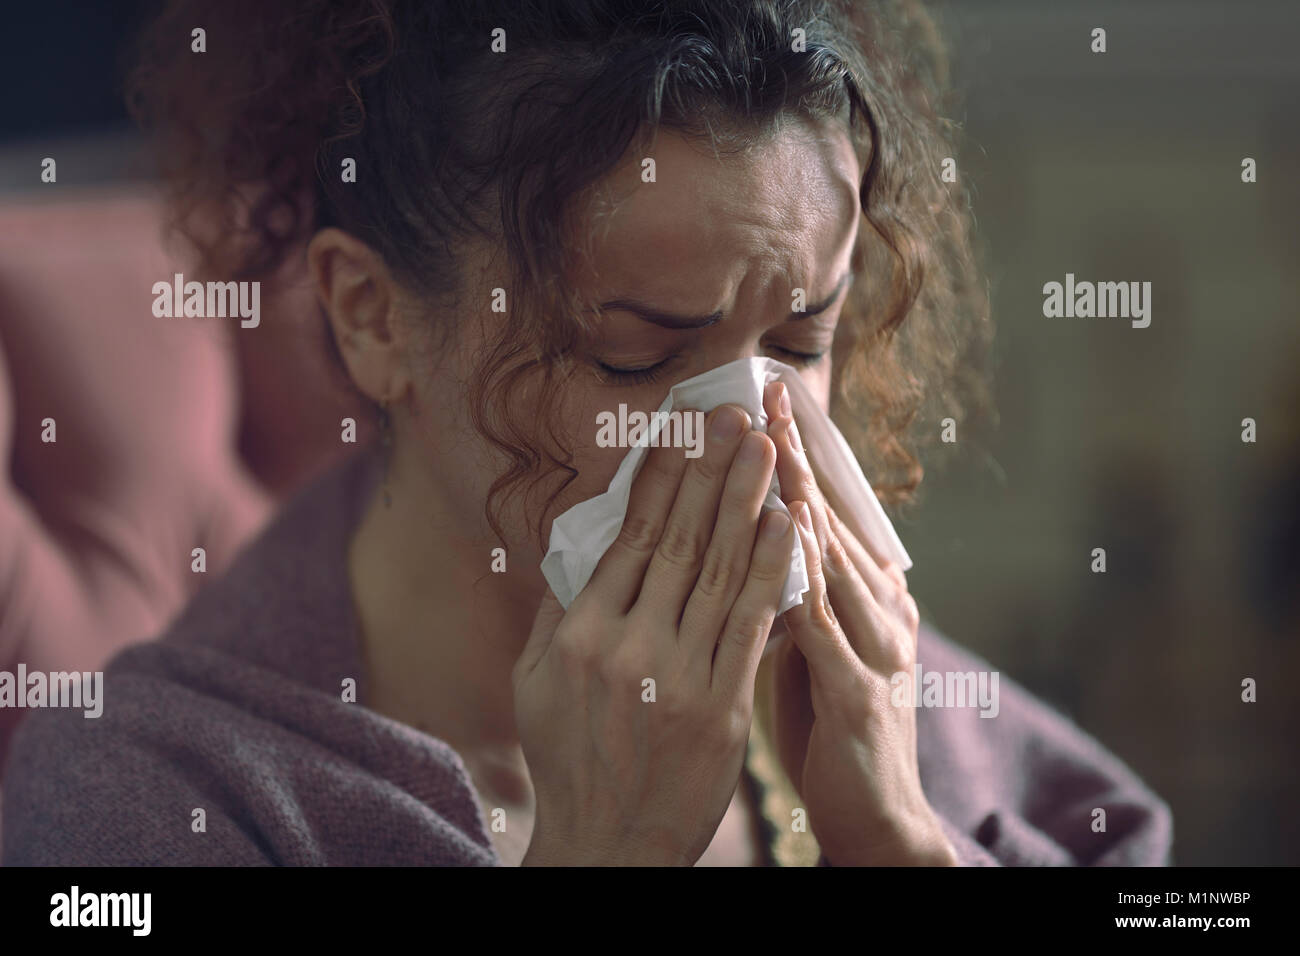 Closeup portrait of a woman with a miserable sick expression blowing her runny nose in a paper tissue - Stock Image